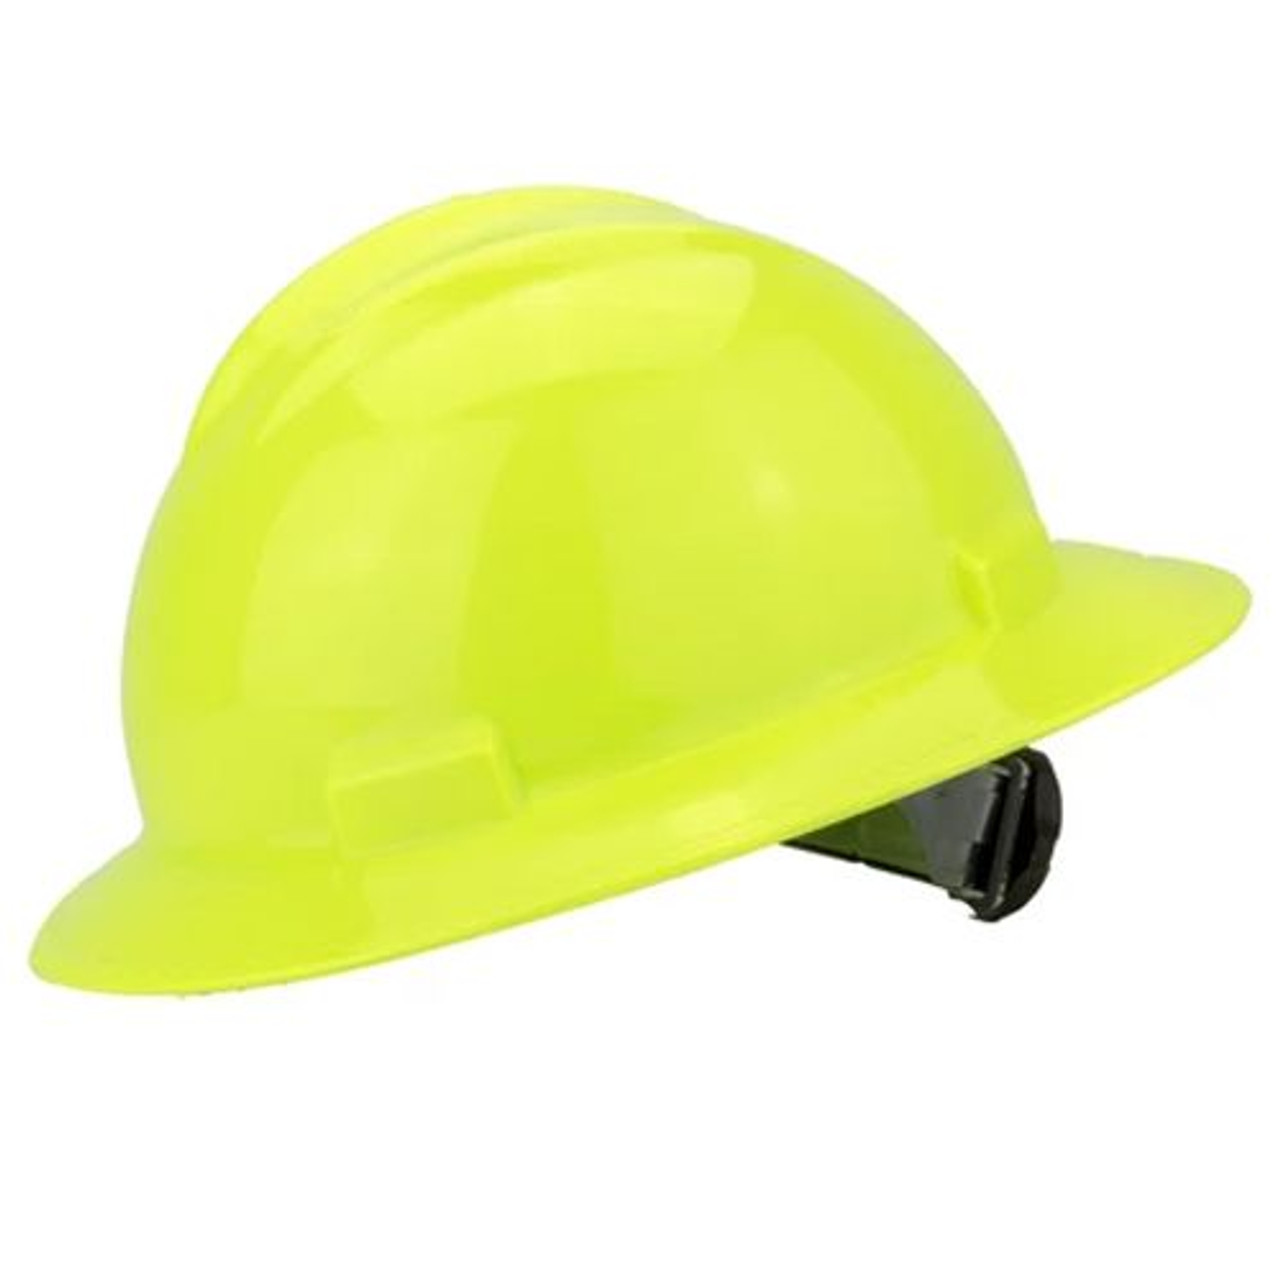 Bullard hard hat suspension one set of 3 yellow straps and clips .